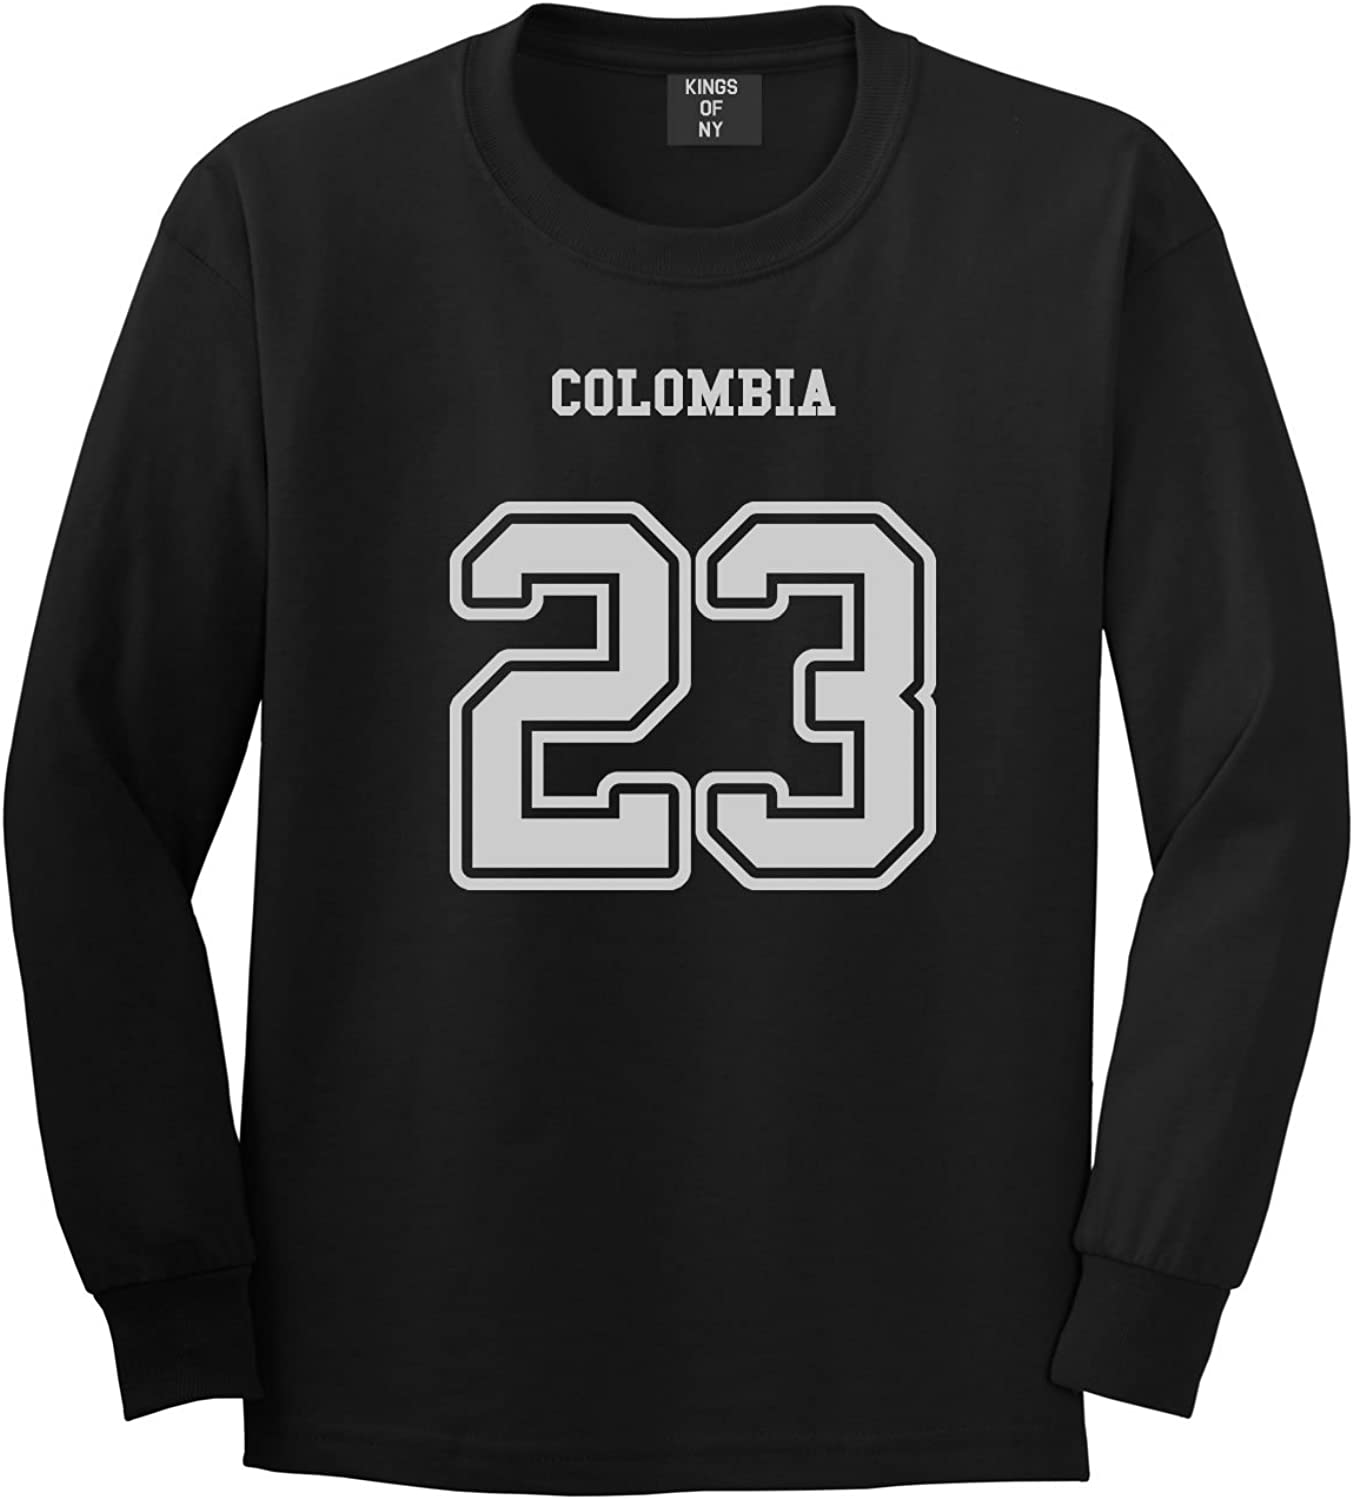 154a015ef Kings Of NY Country Country Country of Colombia 23 Team Sport Style Jersey Mens  Long Sleeve T-Shirt 5e133a